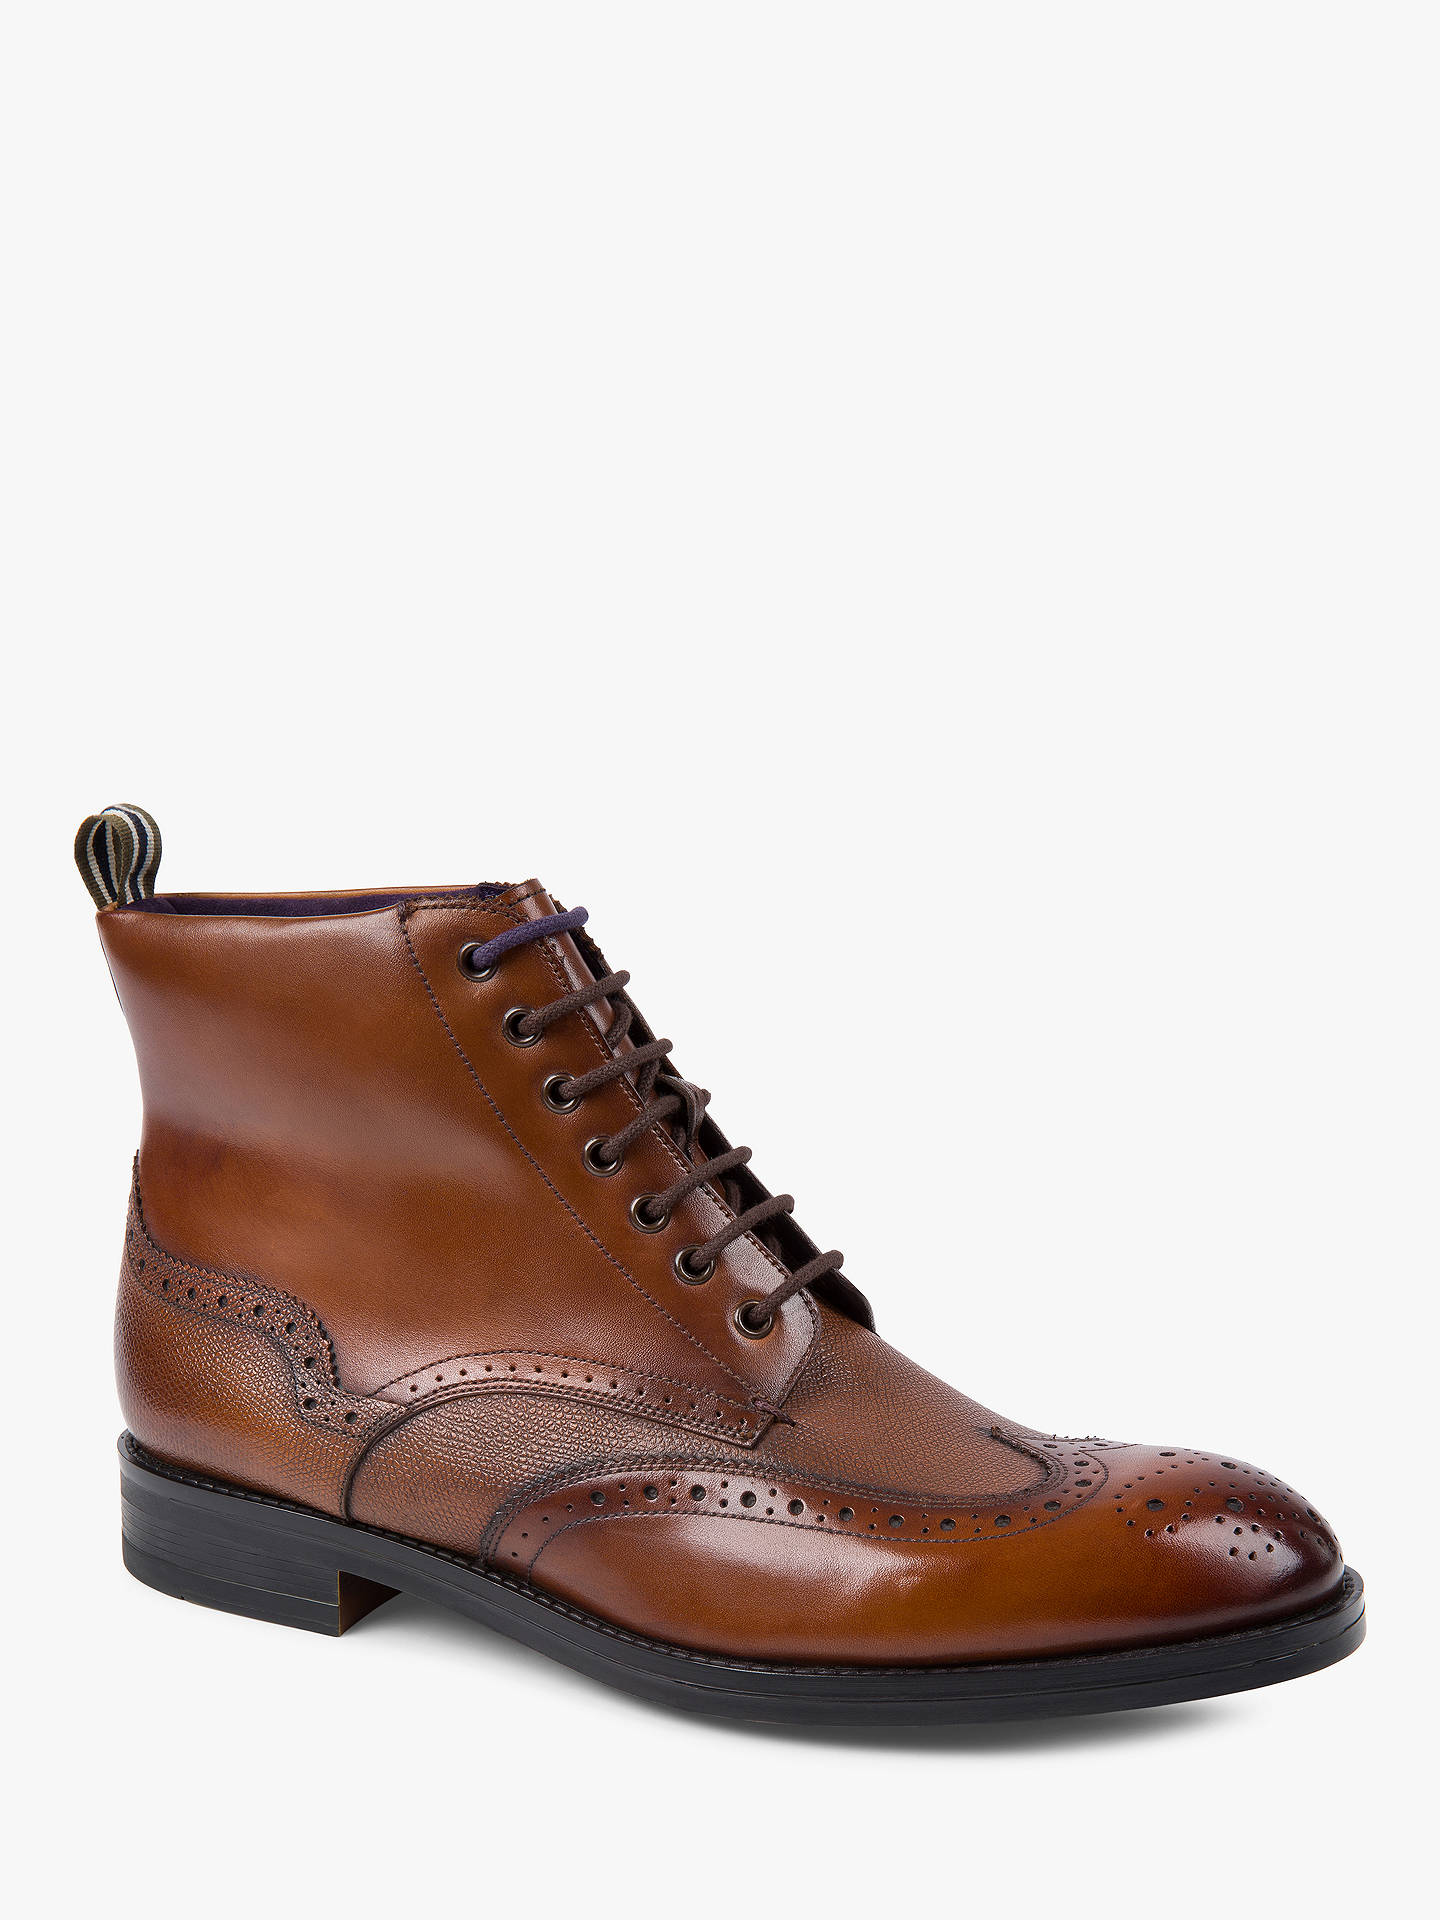 15bf7f832031e Ted Baker Twrens Brogue Boots at John Lewis   Partners